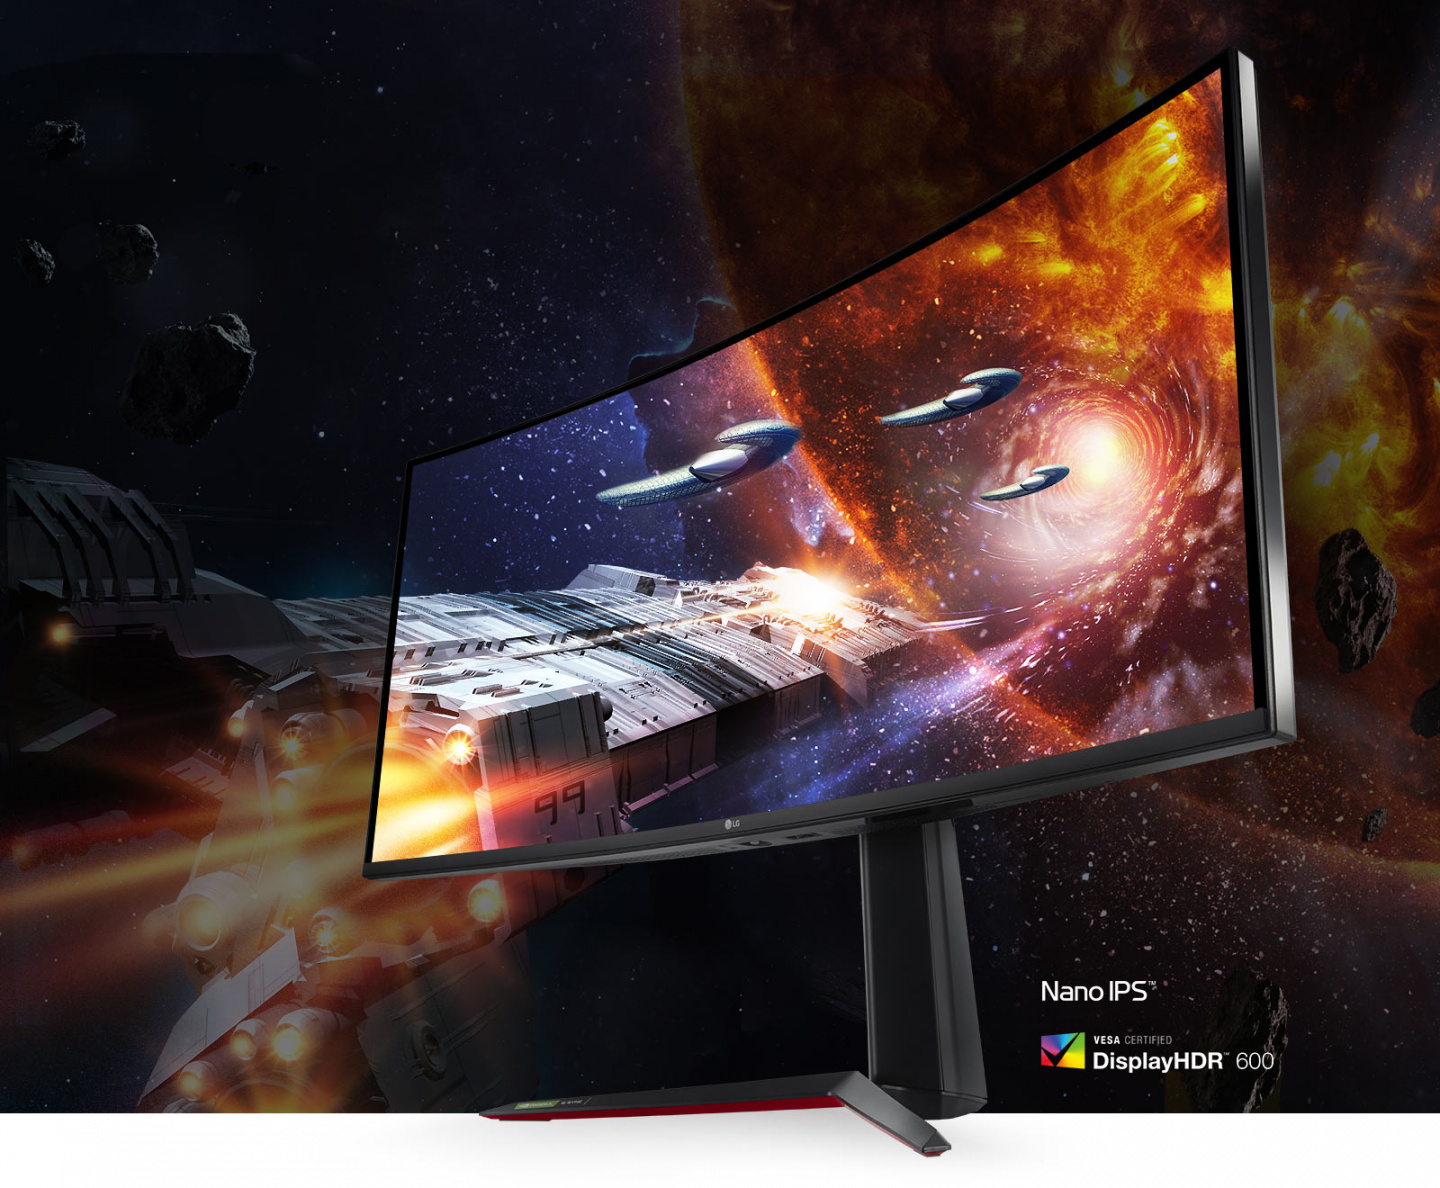 Monitor 38GN950 supporting Nano IPS, and HDR 600